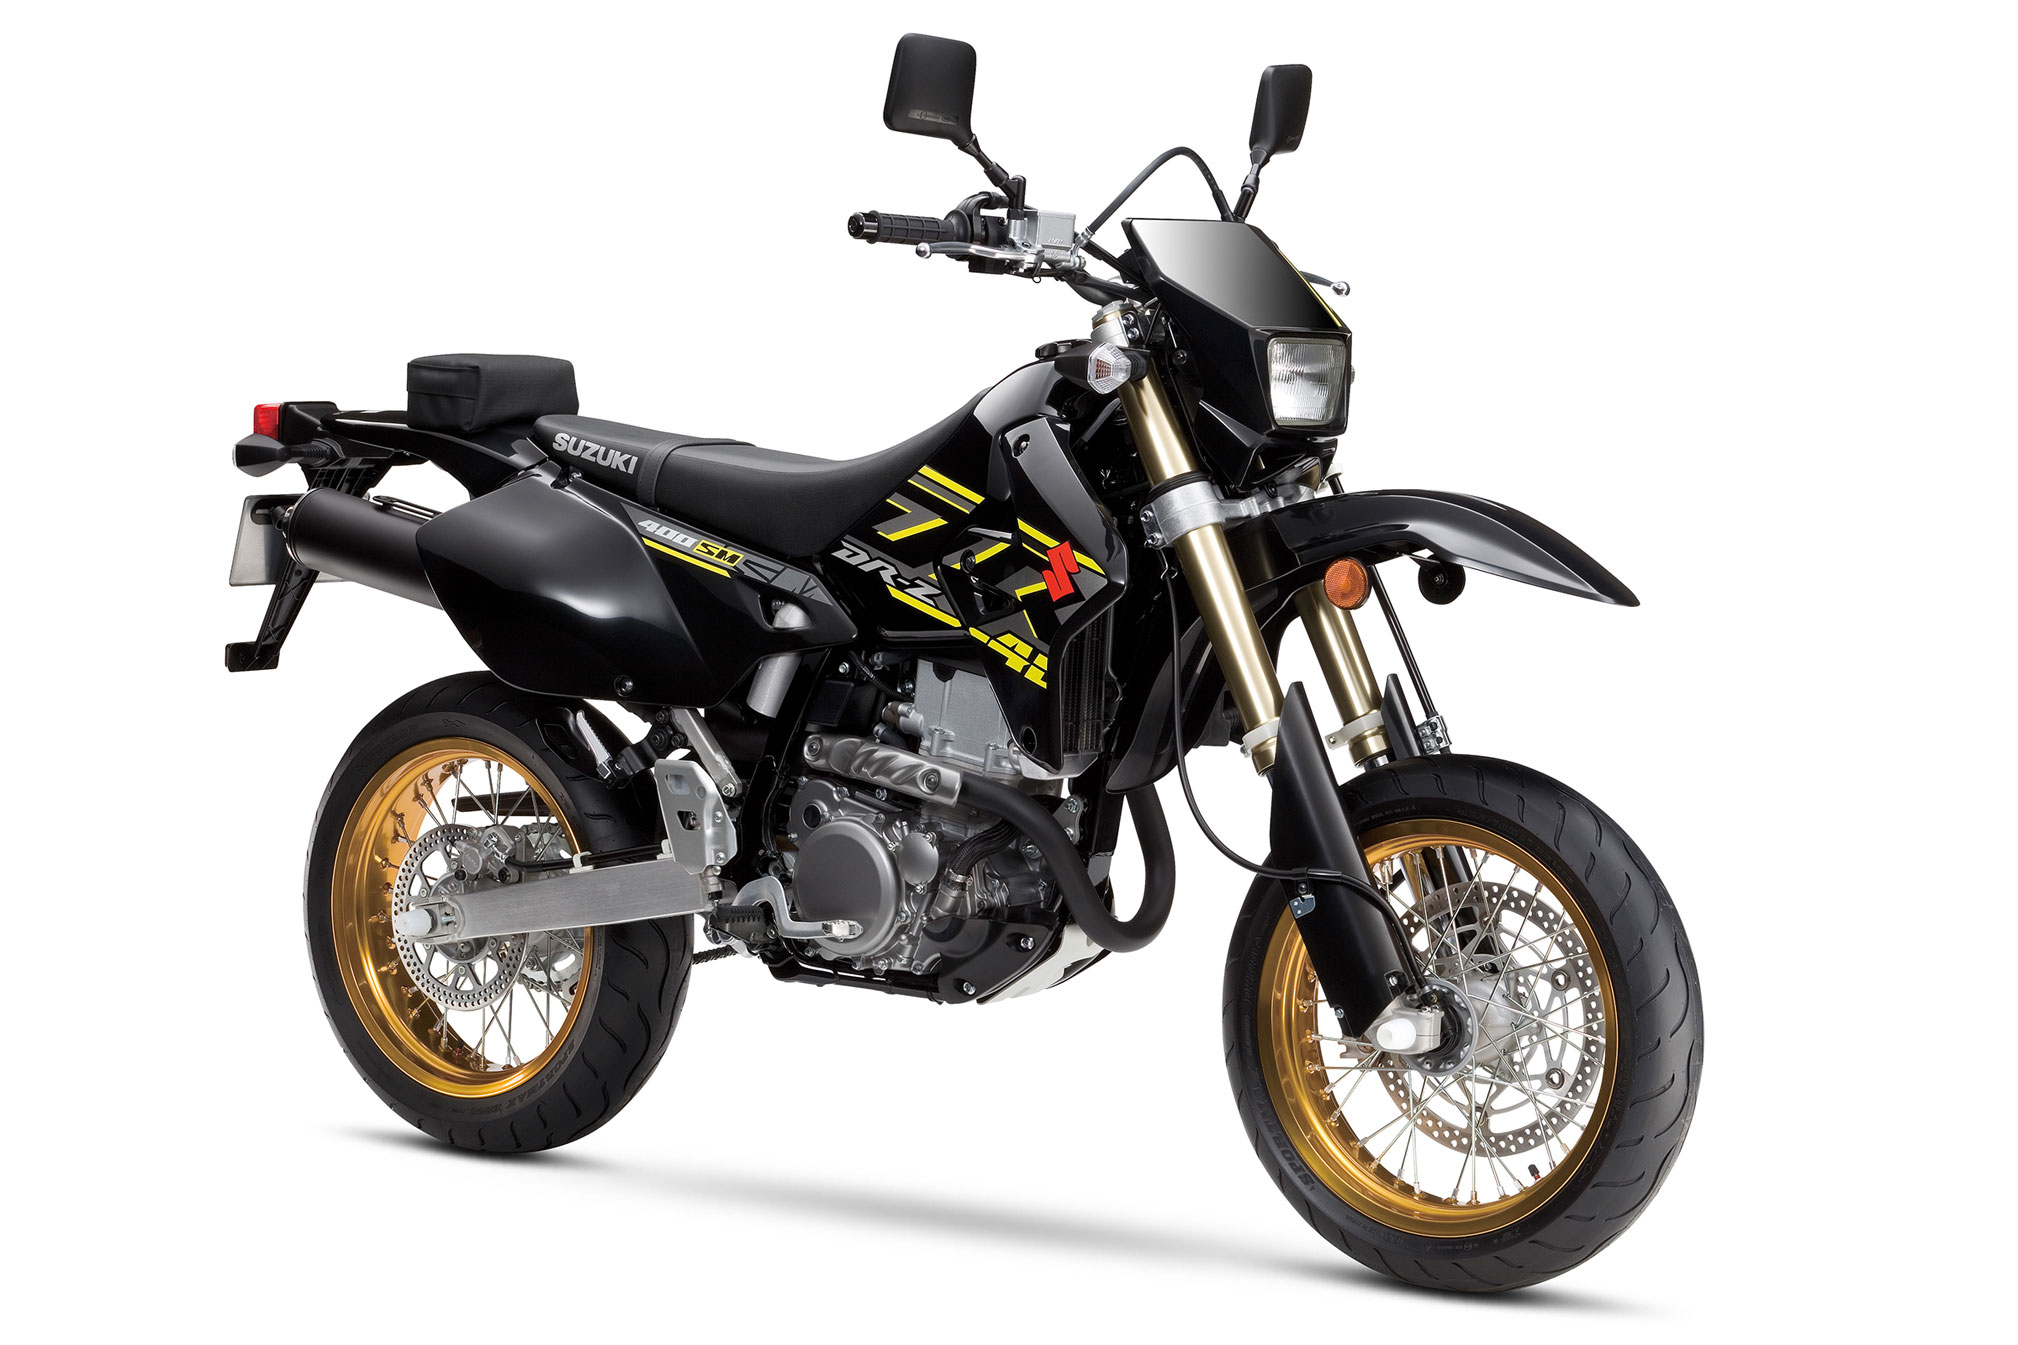 2018 Suzuki Dr Z400sm Review Totalmotorcycle